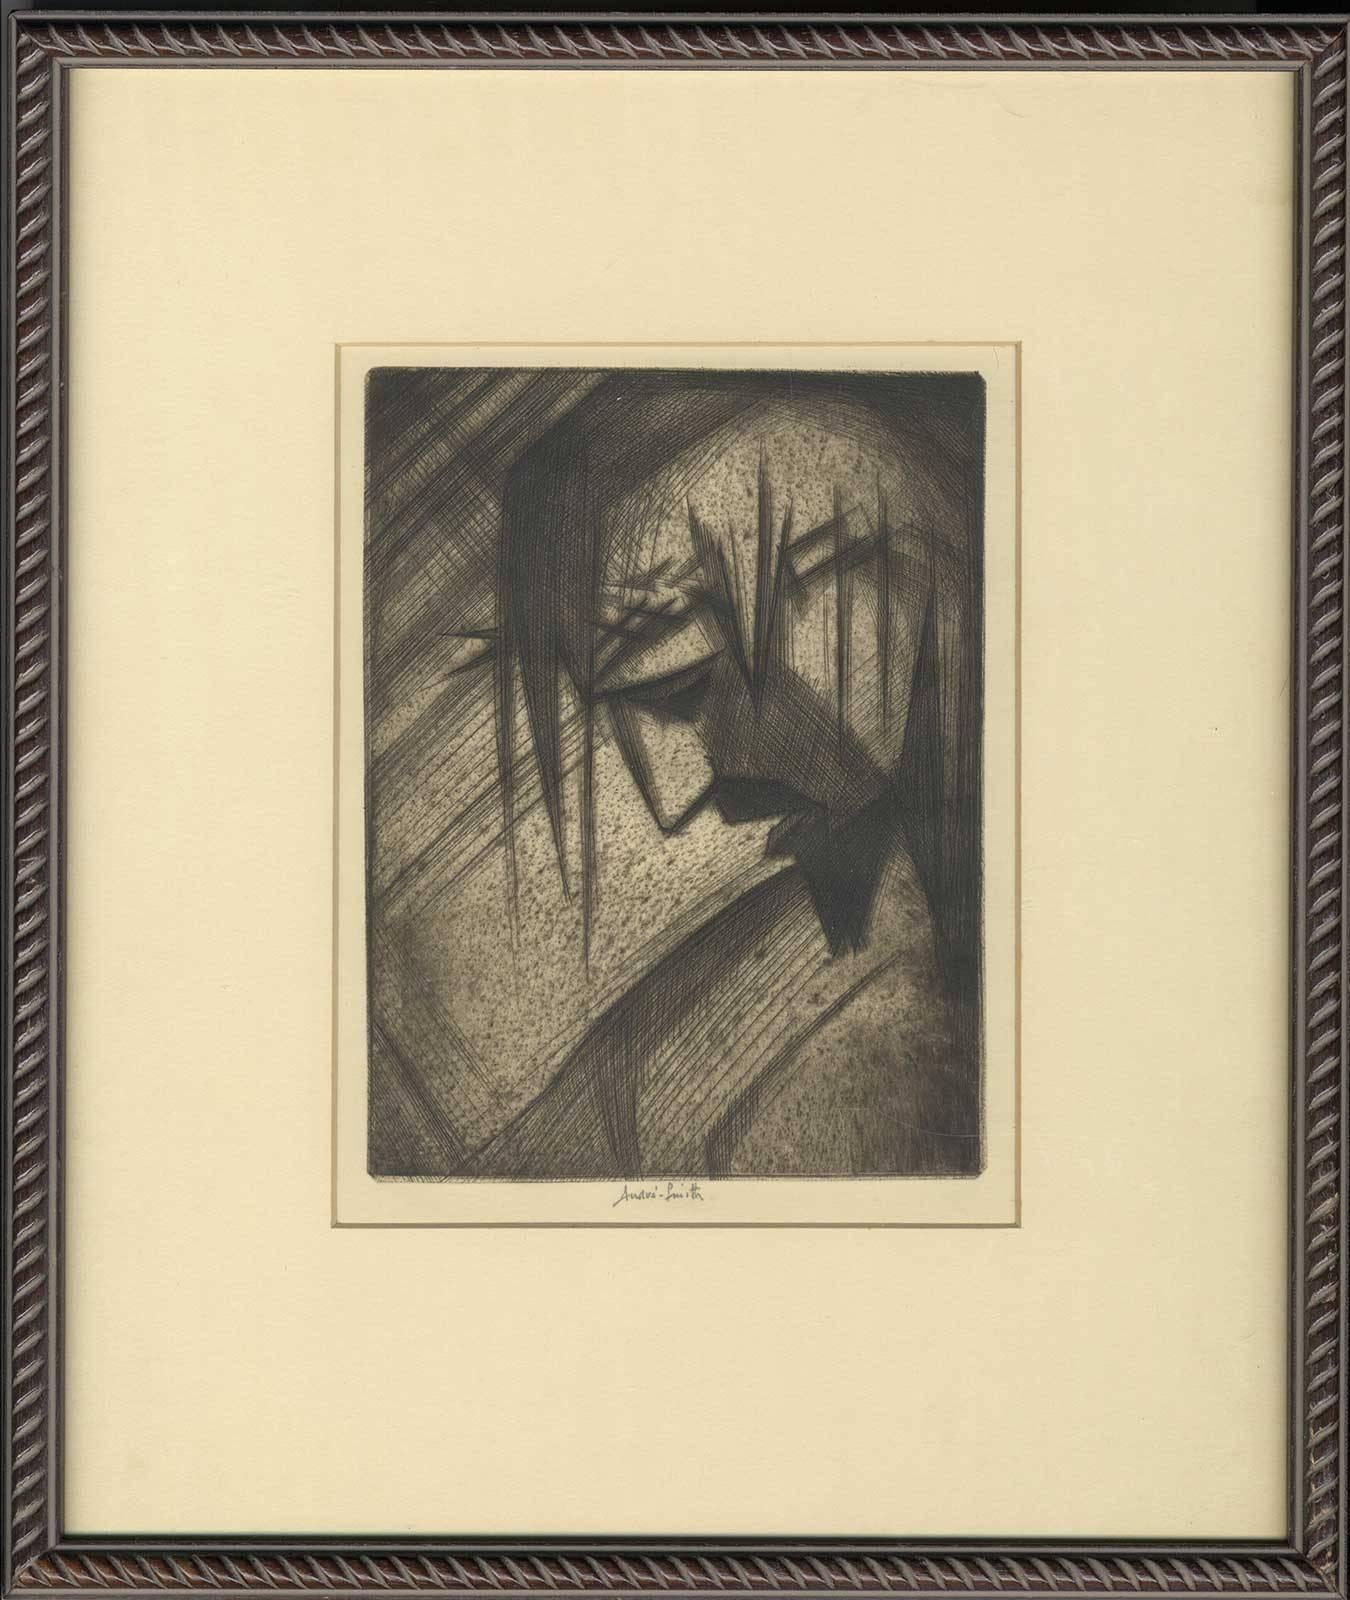 Man of Sorrows ( GOOD FRIDAY stylized side profile of Christ in crown of thorns)